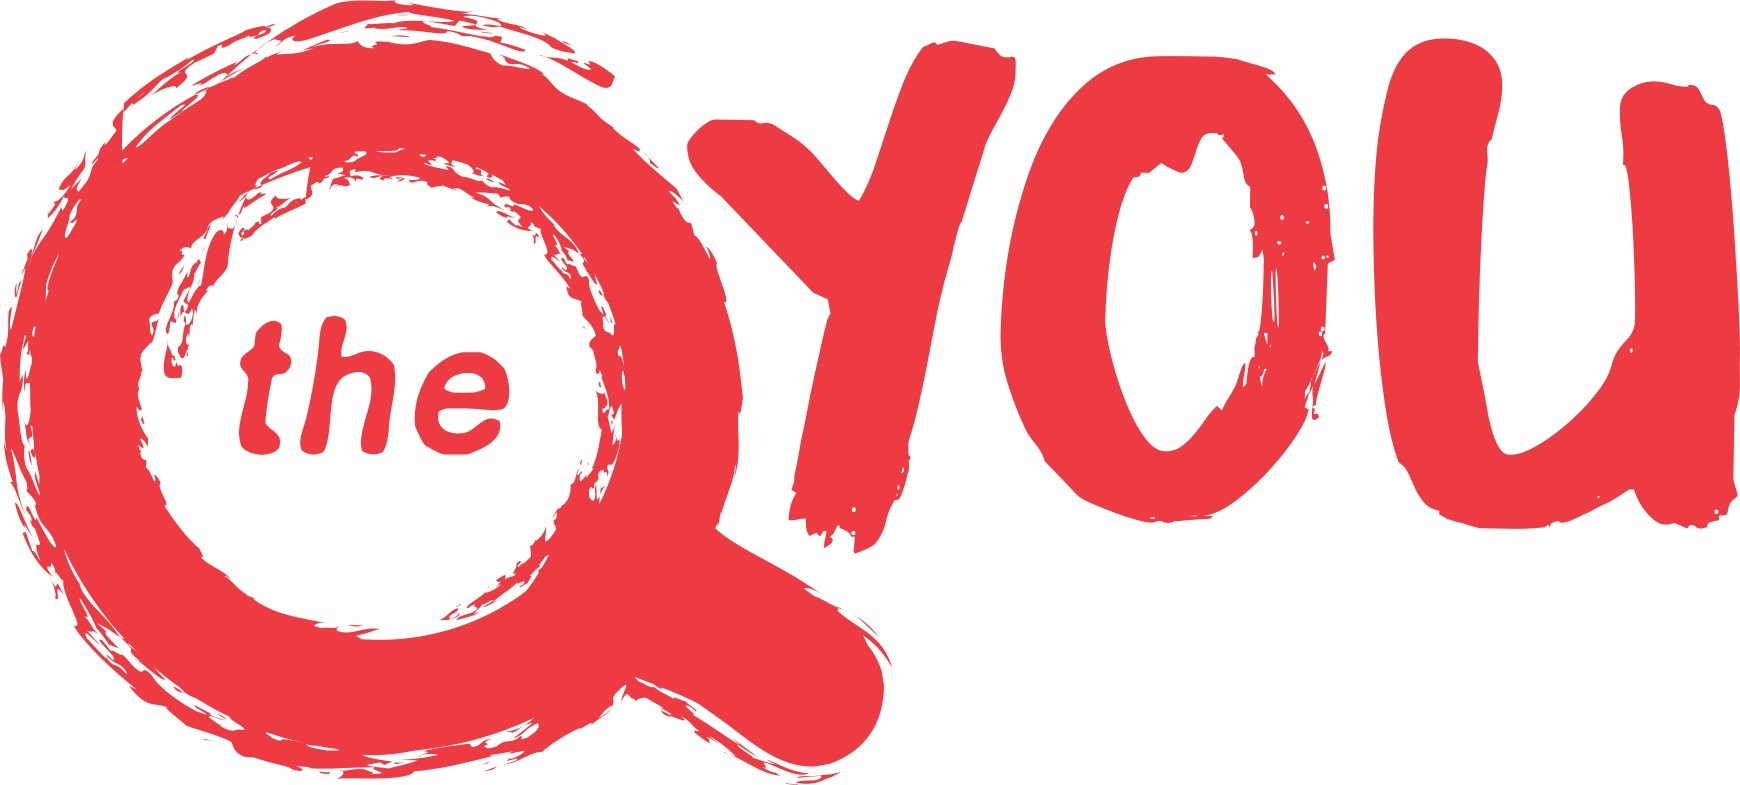 QYOU Media Completes First Closings of Private Placement